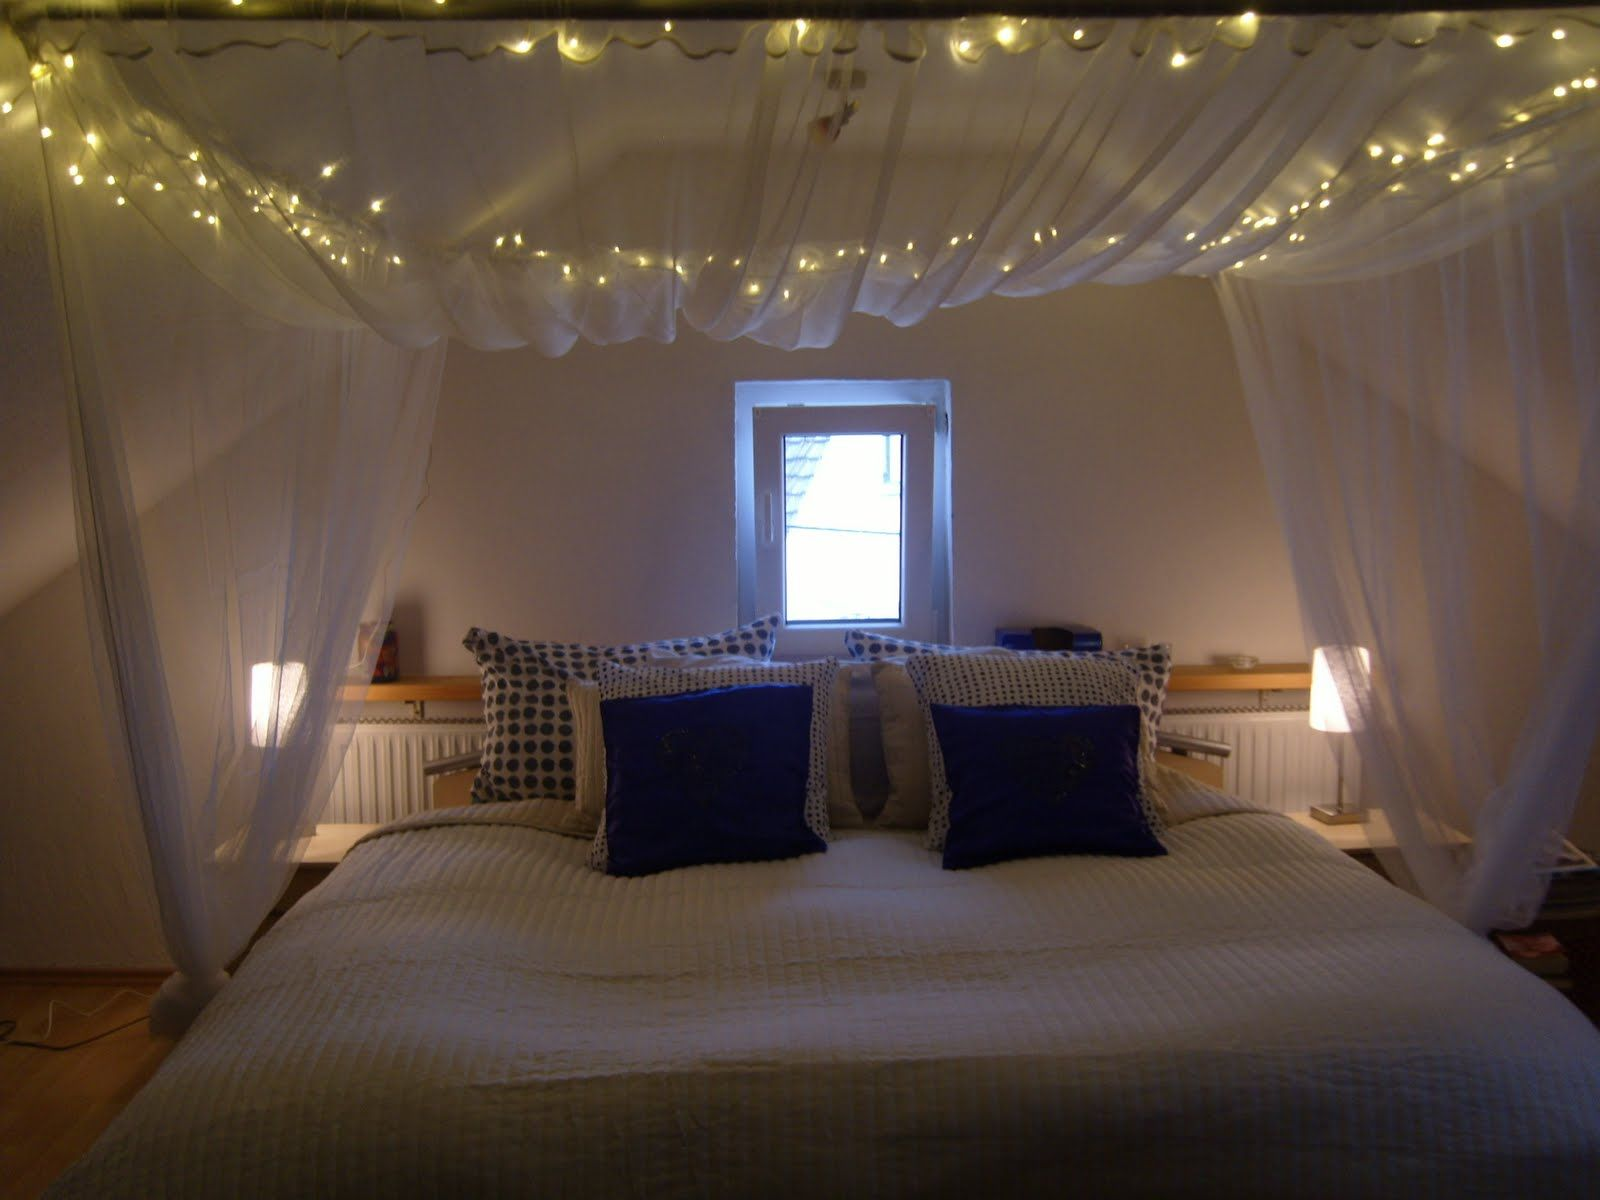 Canopy bed curtains with lights - Do It Yourself Headboards Ideas Have Always Wanted A Canopy Bed So This Weekend I